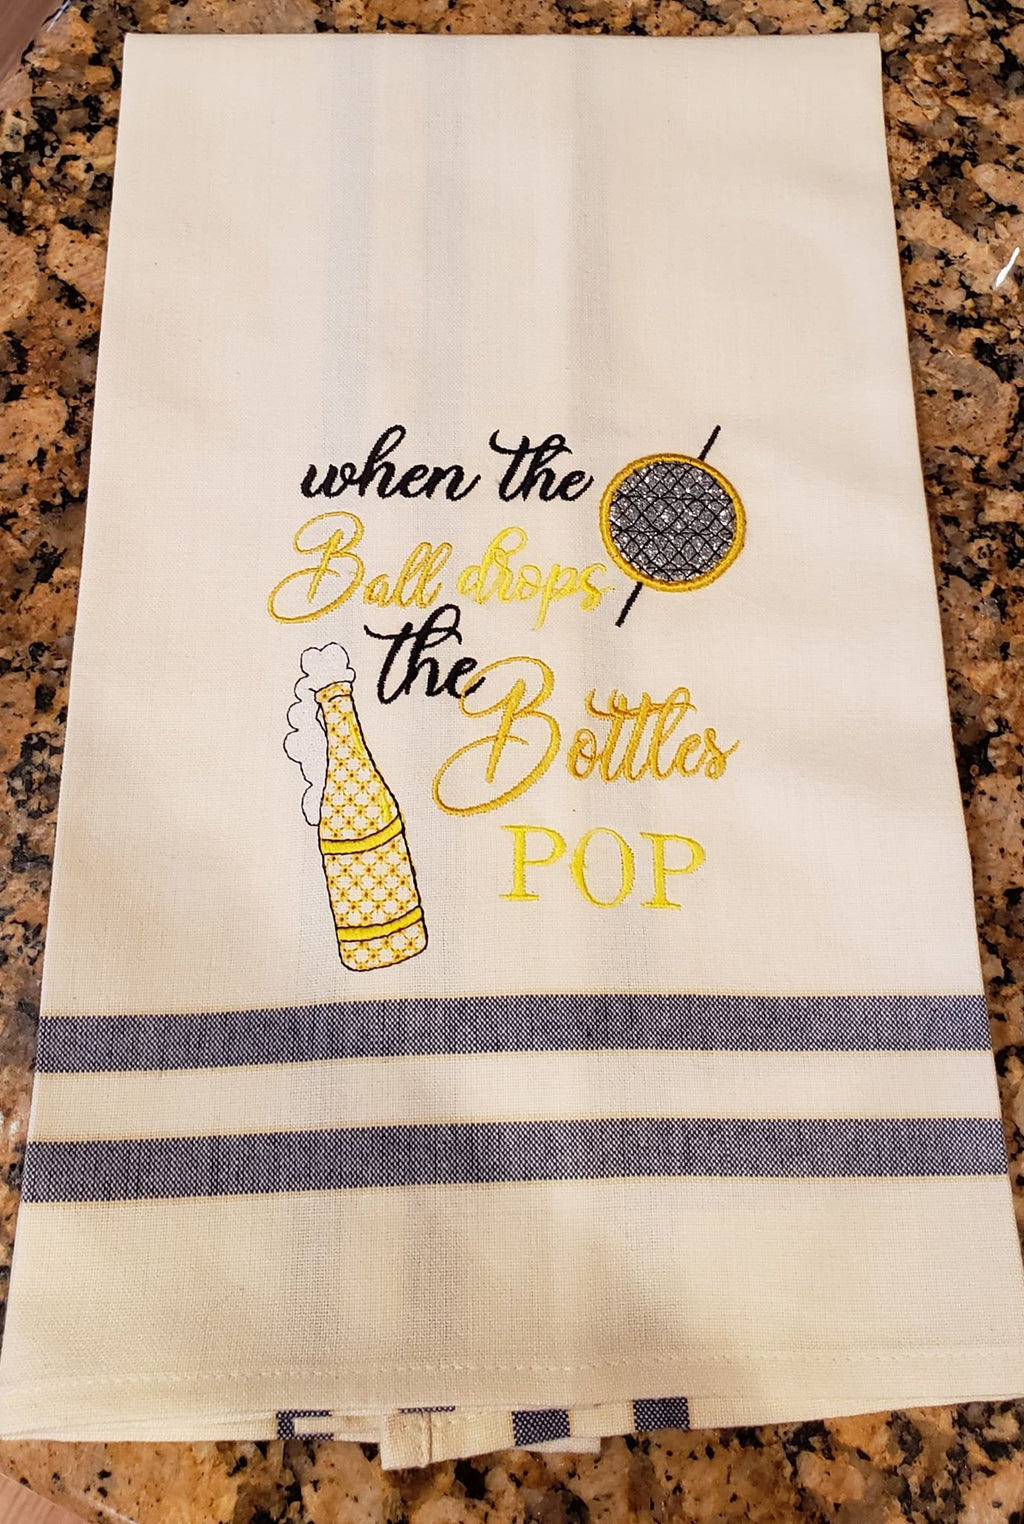 When The Ball Drops The Bottles Pop New Years Wine Embroidery Design - Sew What Embroidery Designs